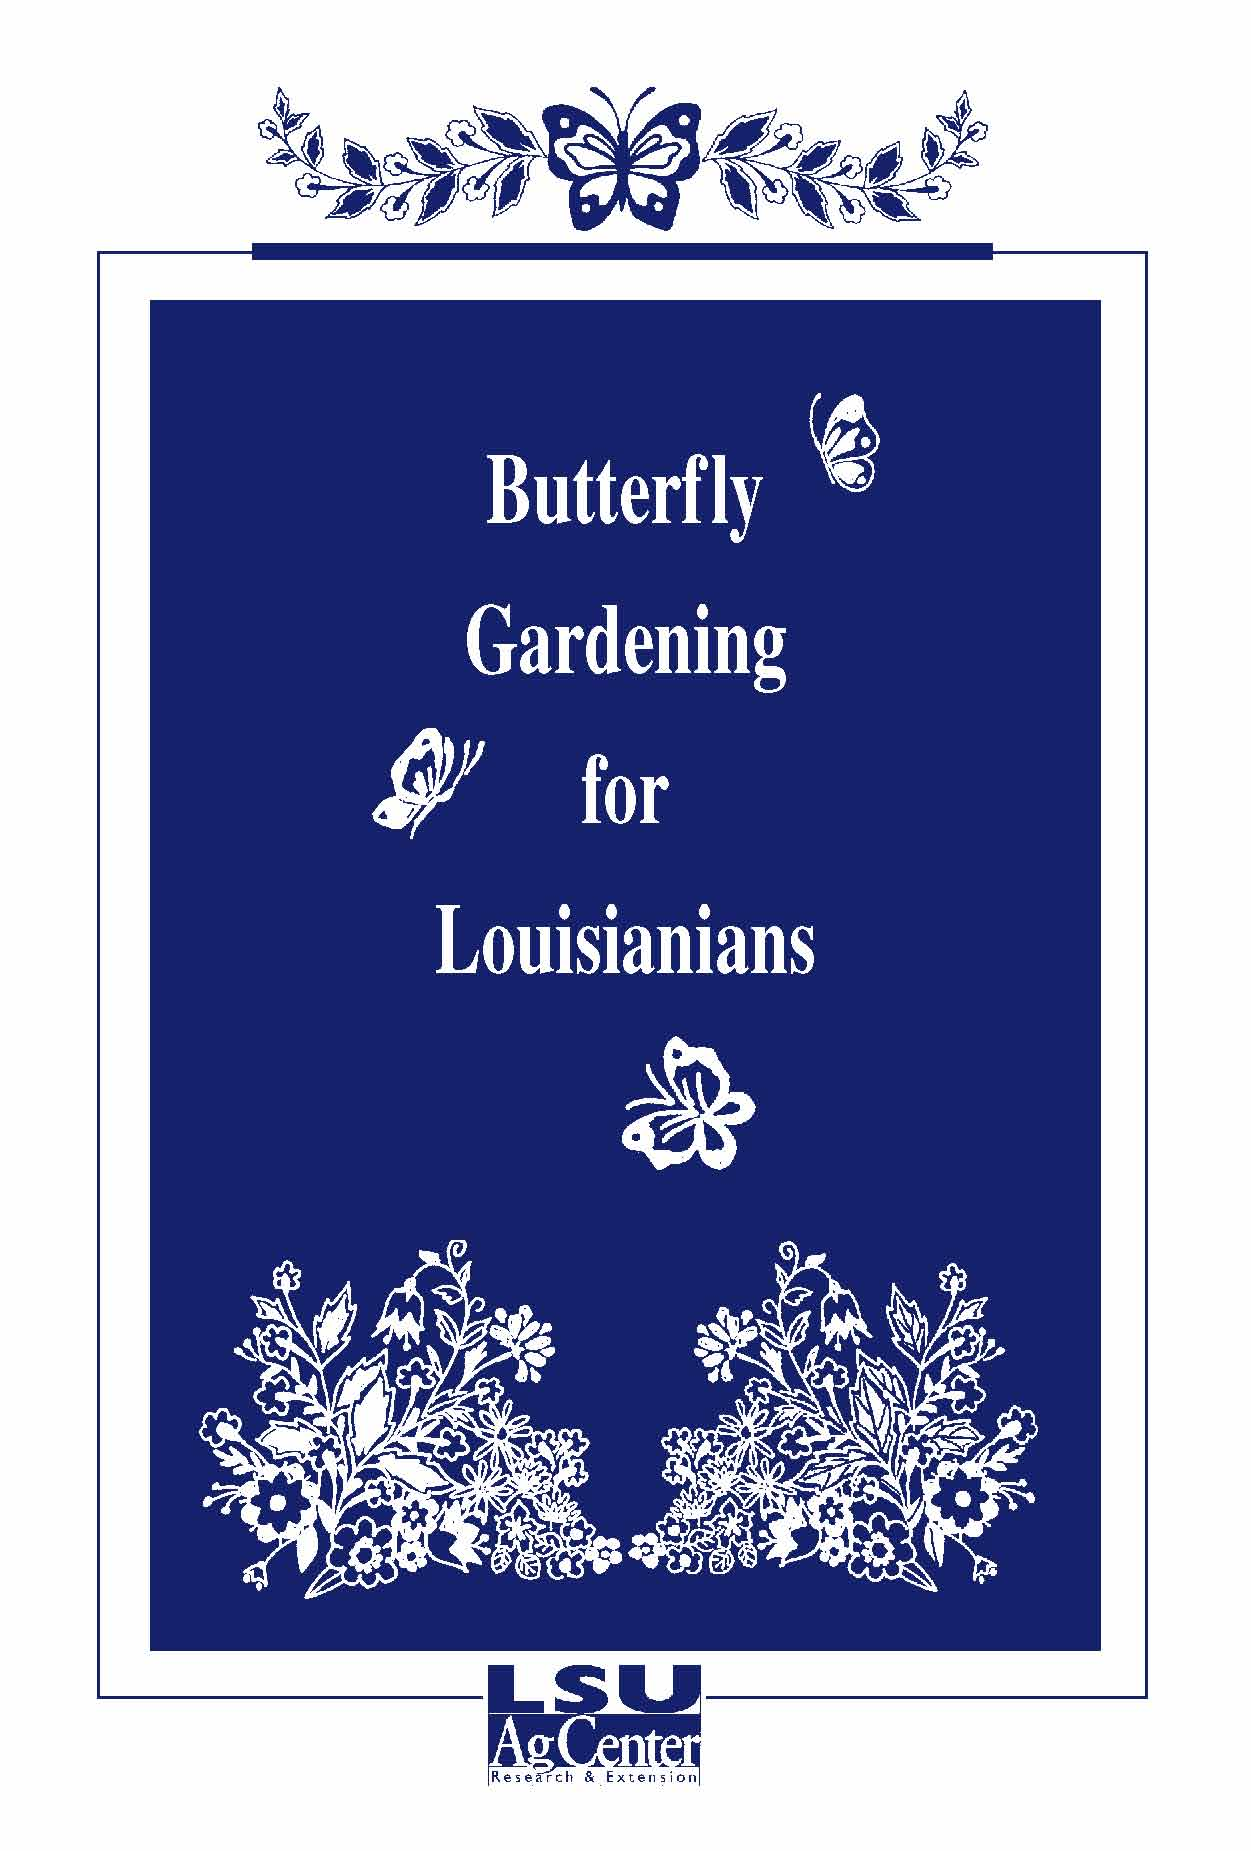 Butterfly Gardening for Louisianians